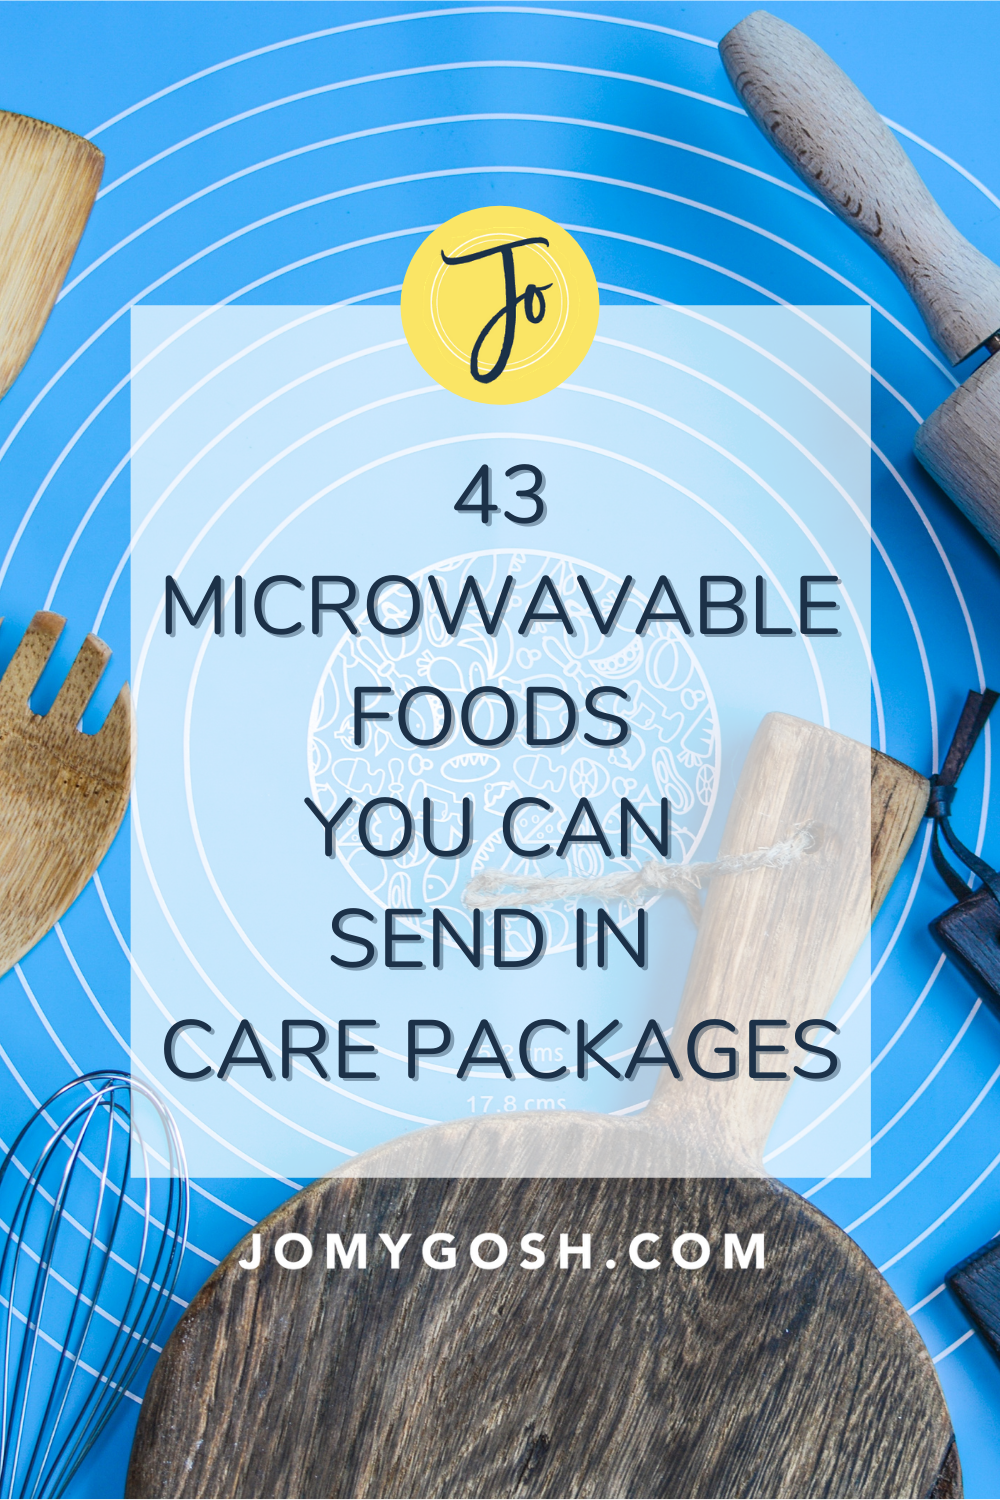 <3 this list of microwavable foods that can be sent in care packages and easily prepared-- just hot water or a microwave needed. deployment, missionary, college #military #carepackage #carepackages #ldr #longdistance #longdistancerelationship #happymail #snailmail #sendmail #militaryspouse #militaryspouses #milspouse #milspouses